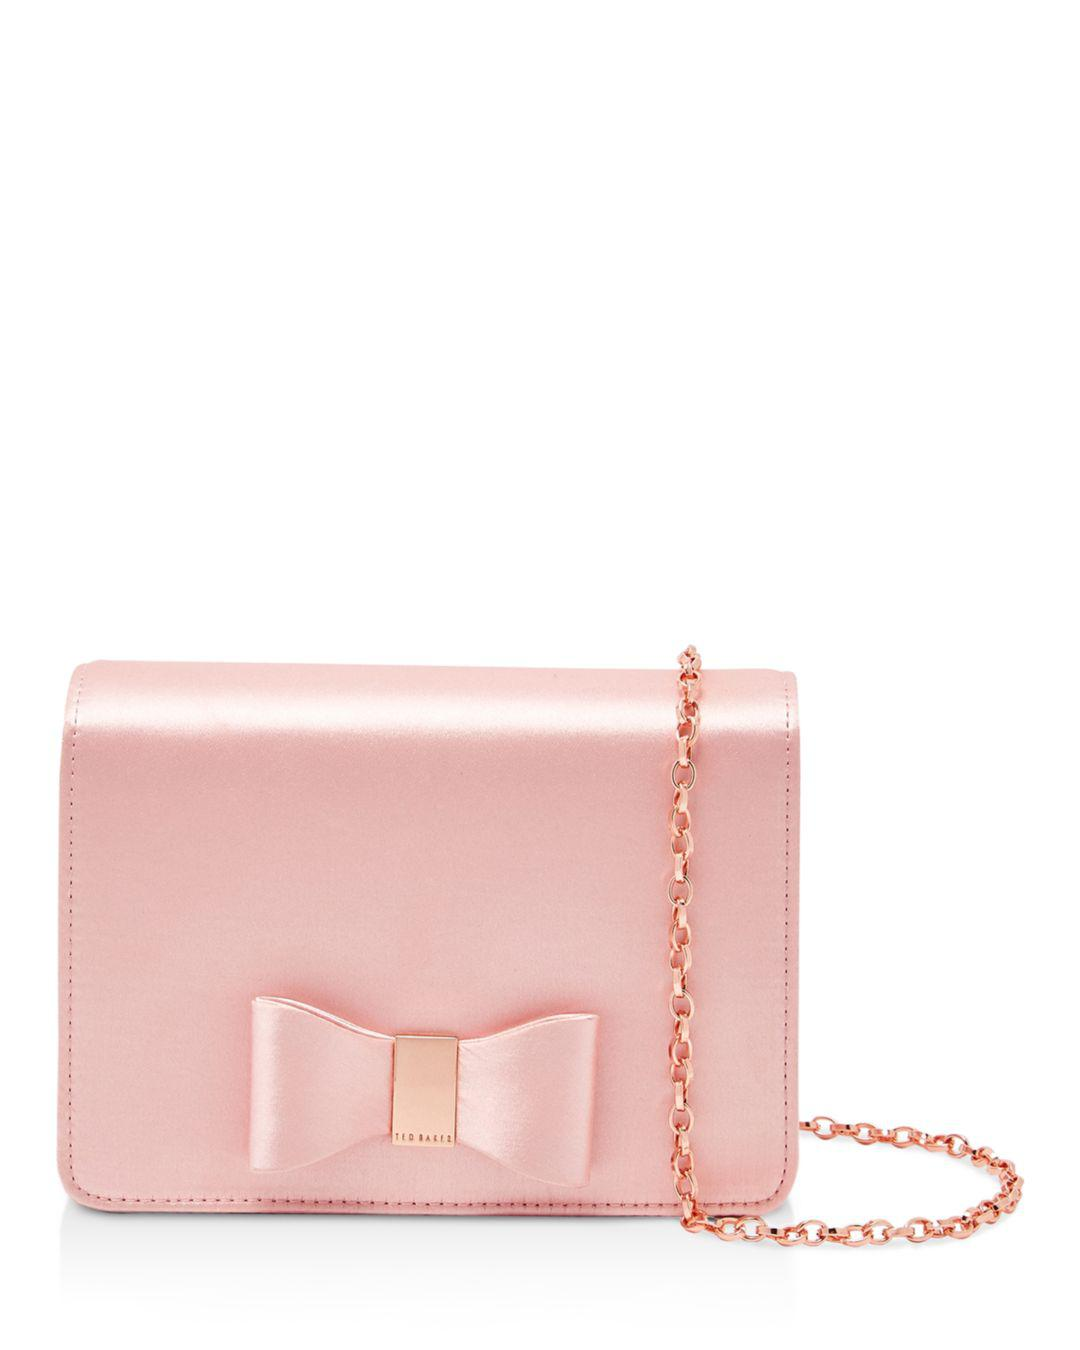 0d5d97cb5bbf0 Lyst - Ted Baker Eveelyn Small Evening Bag in Pink